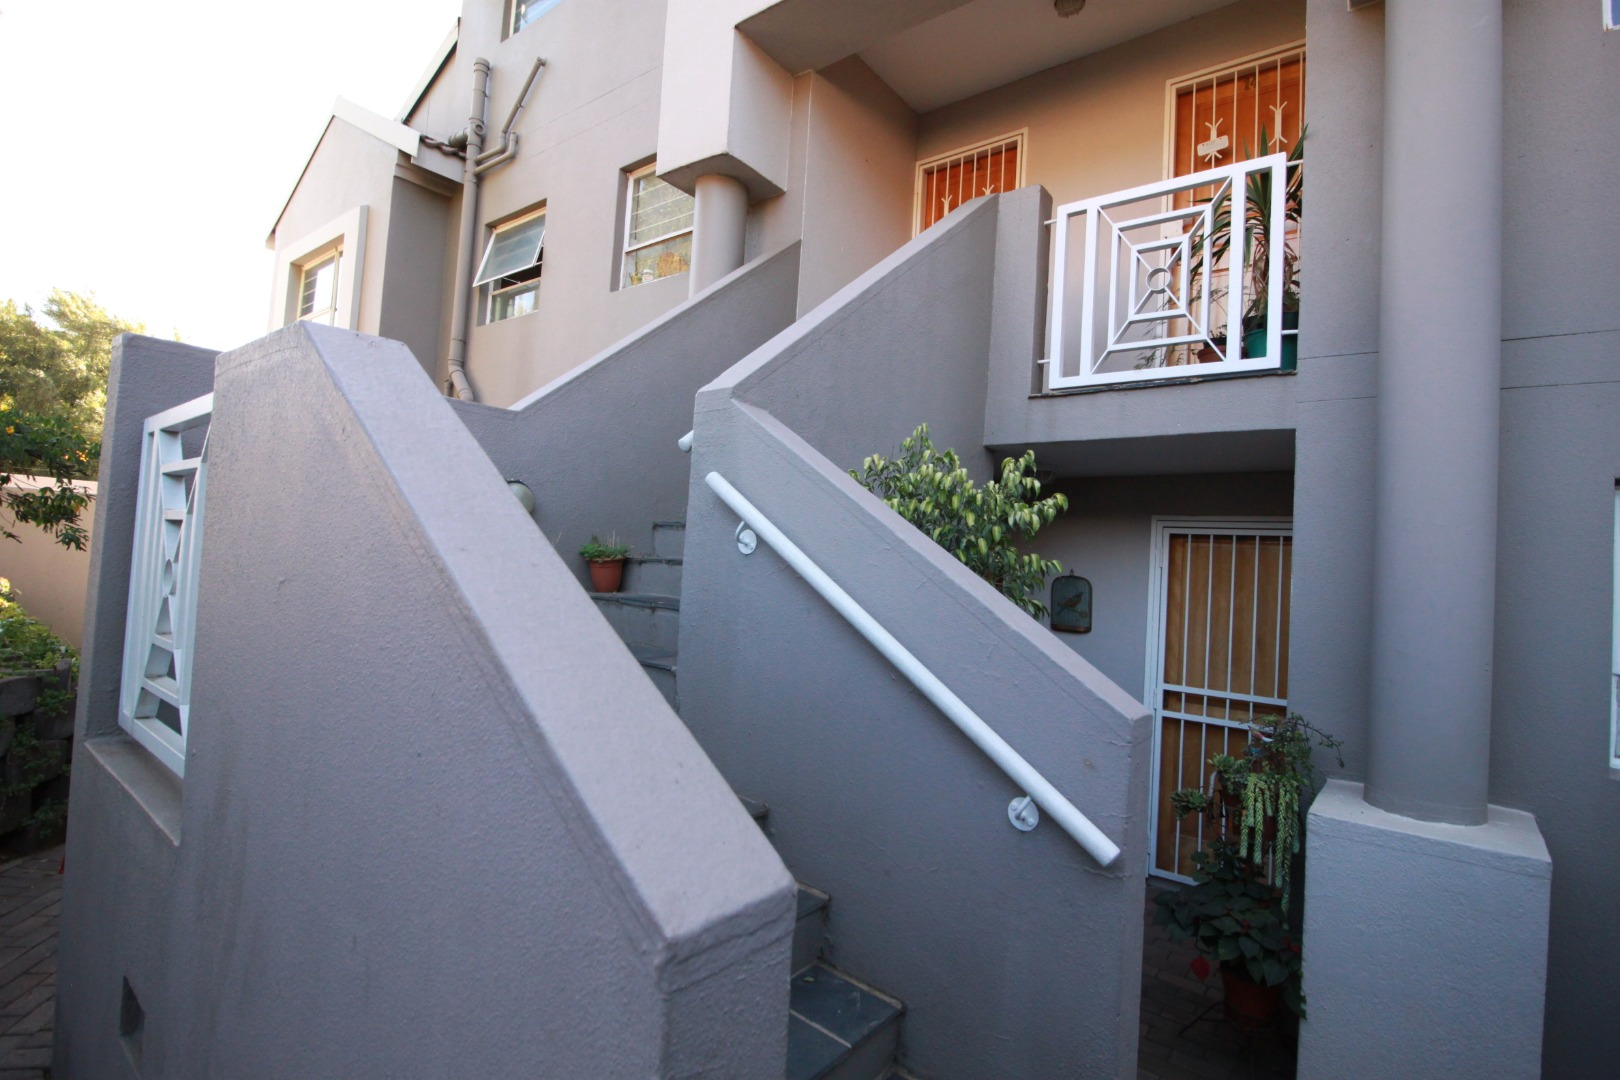 2 Bedroom Apartment Flat To Rent In Kensington Re Max Of Southern Africa